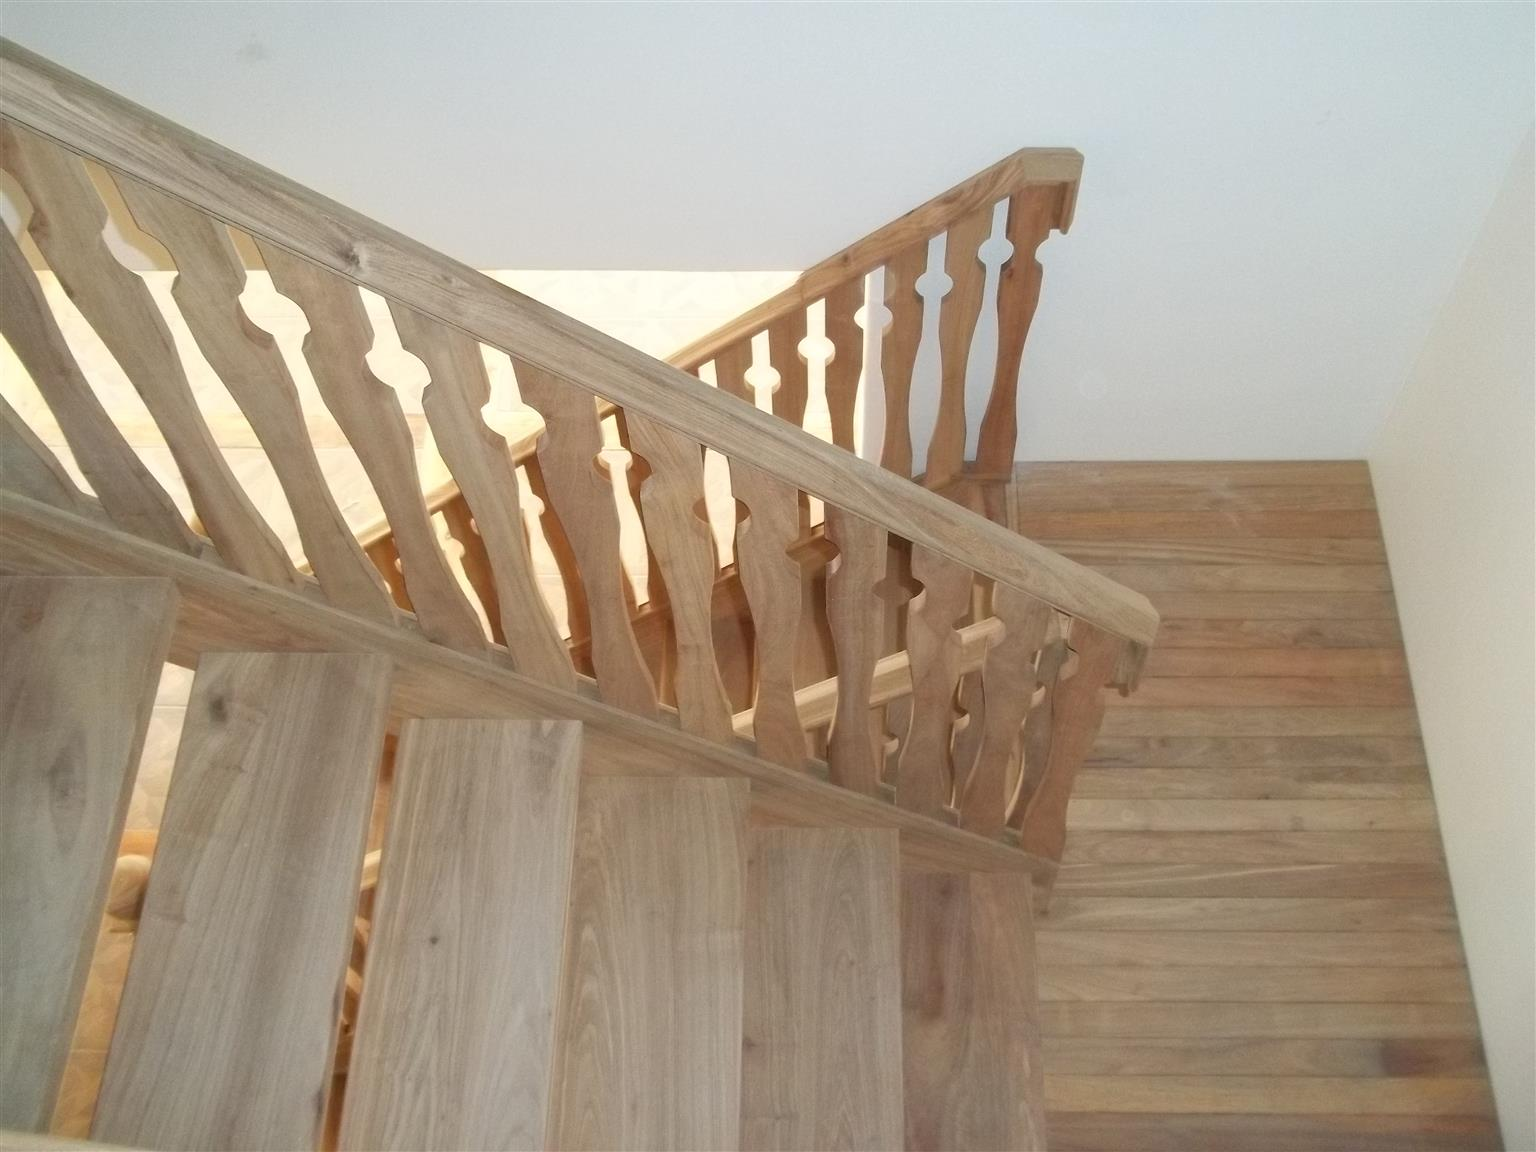 STAIRCASES - WOODEN STAIRS, BALUSTRADES AND RAILINGS CUSTOM MADE